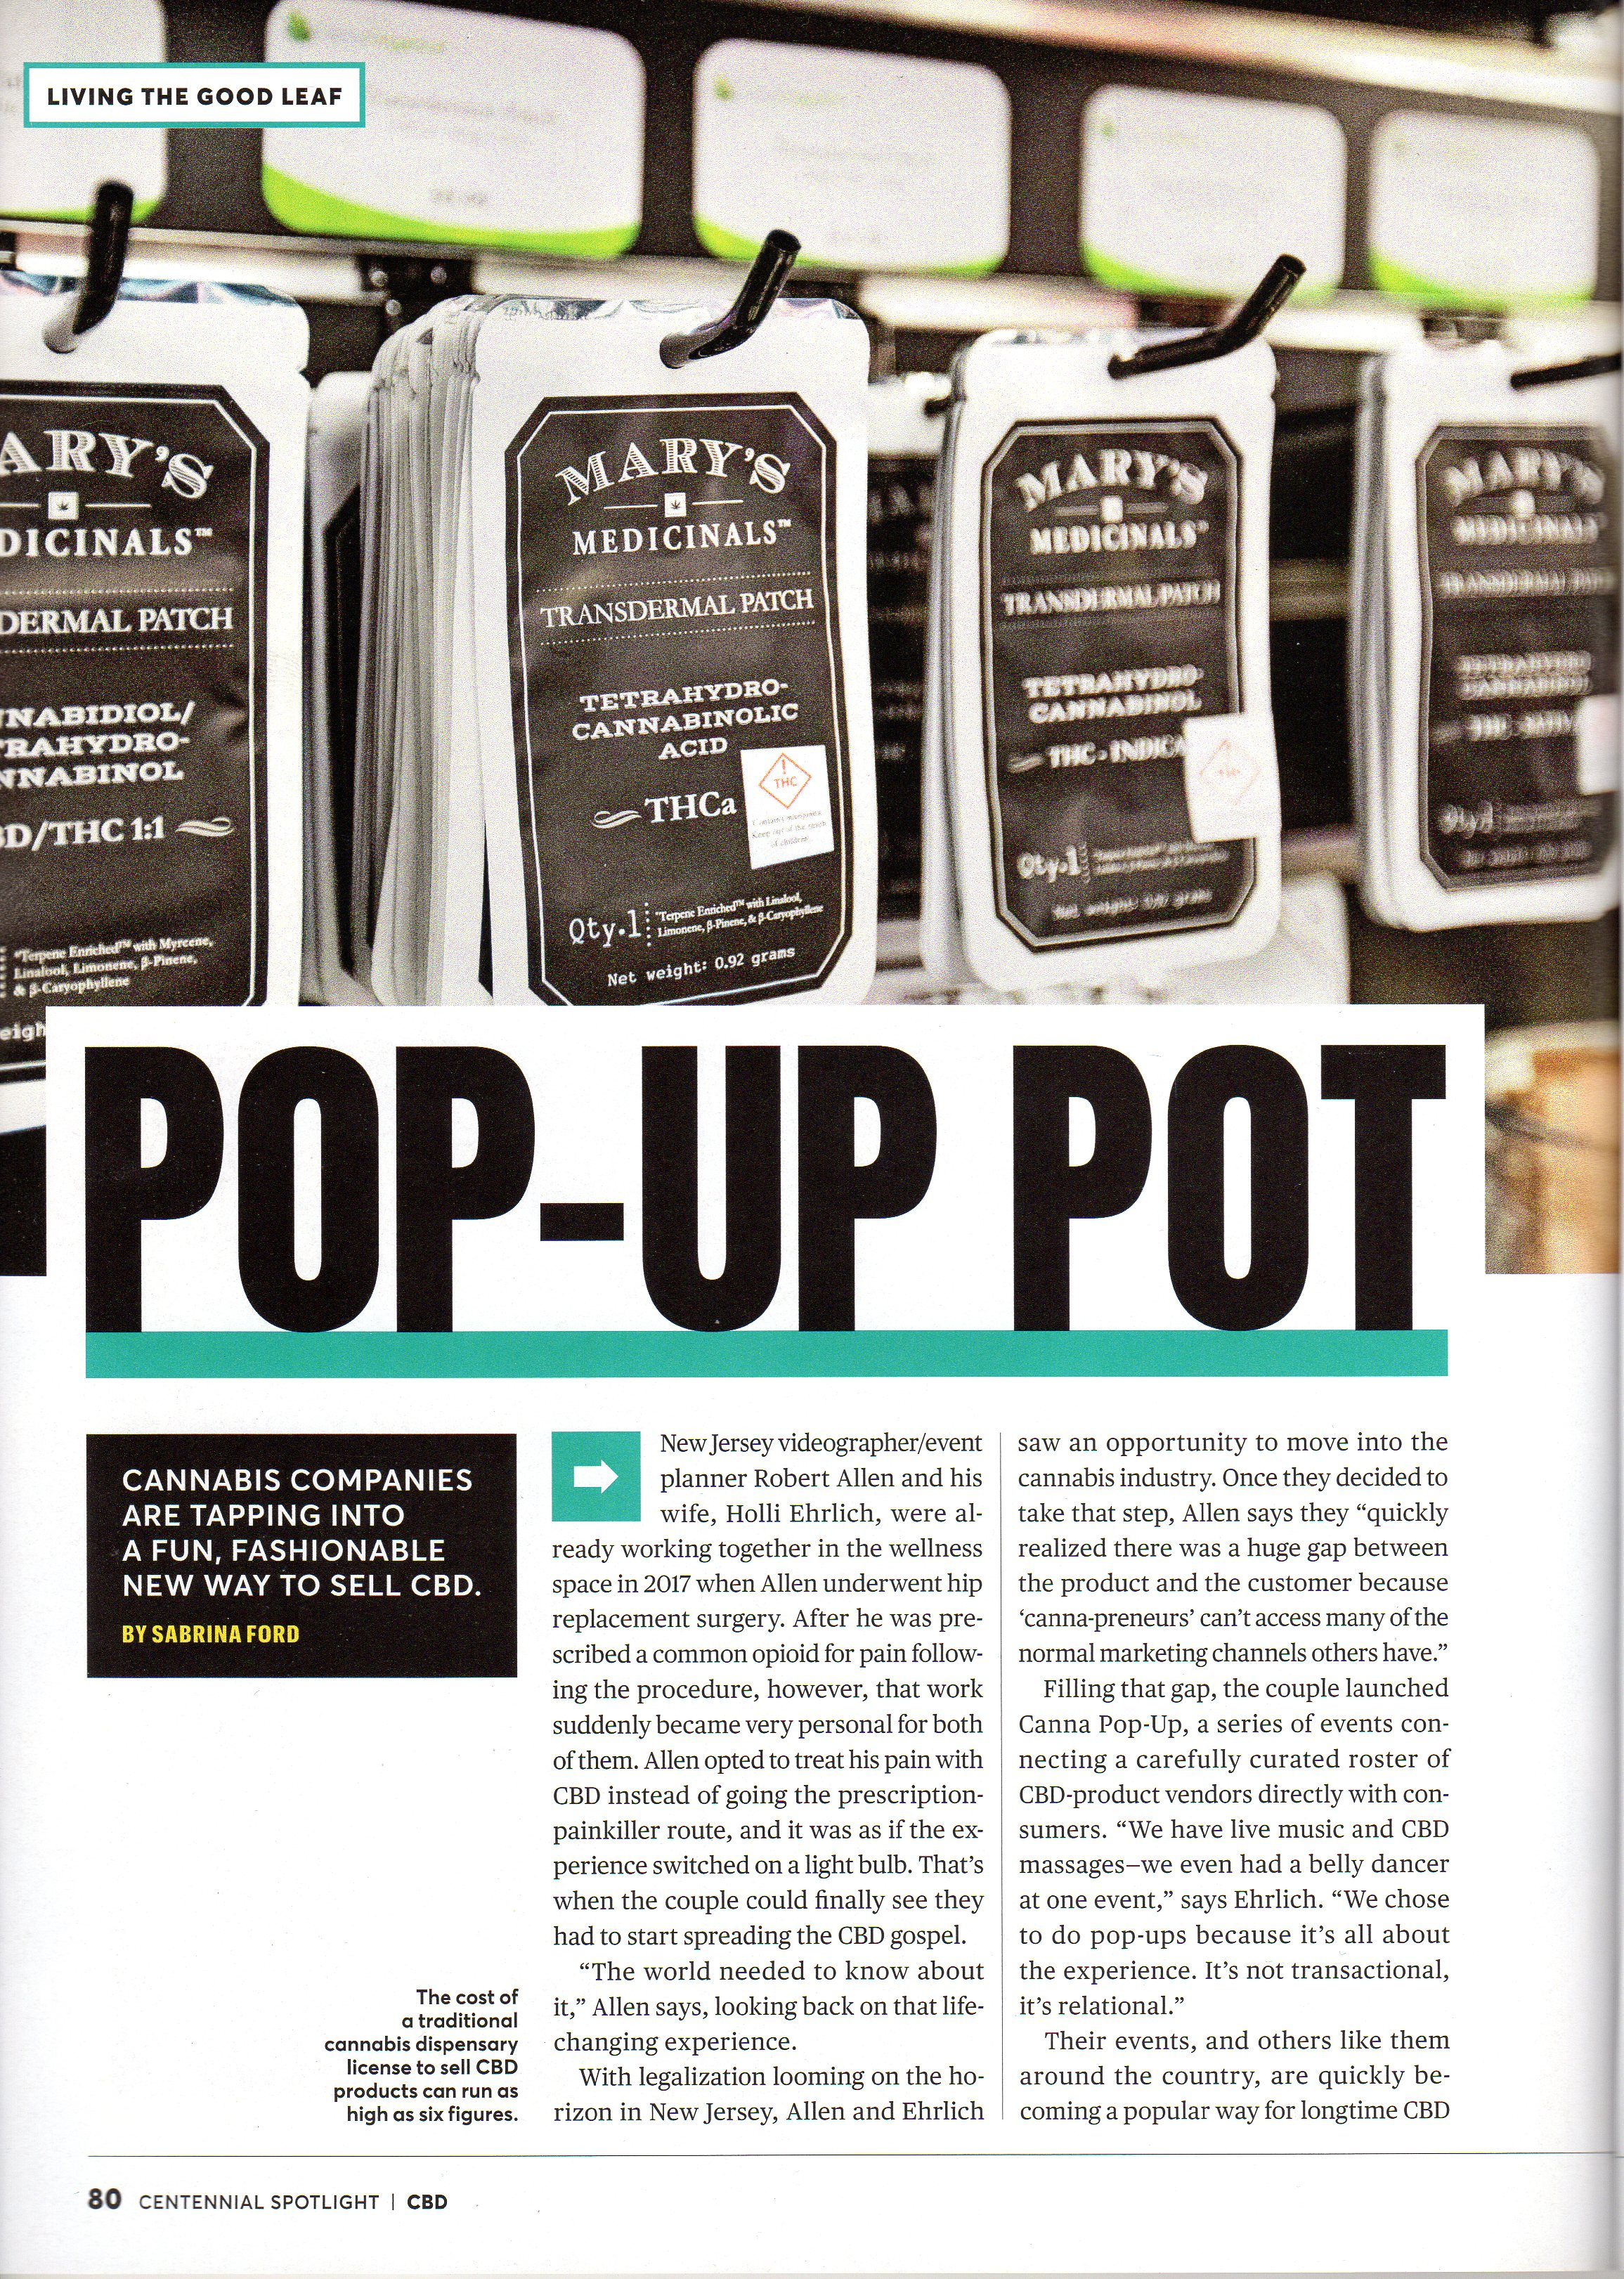 Pop-Up Pot Article in The Complete Guide to CBD 2